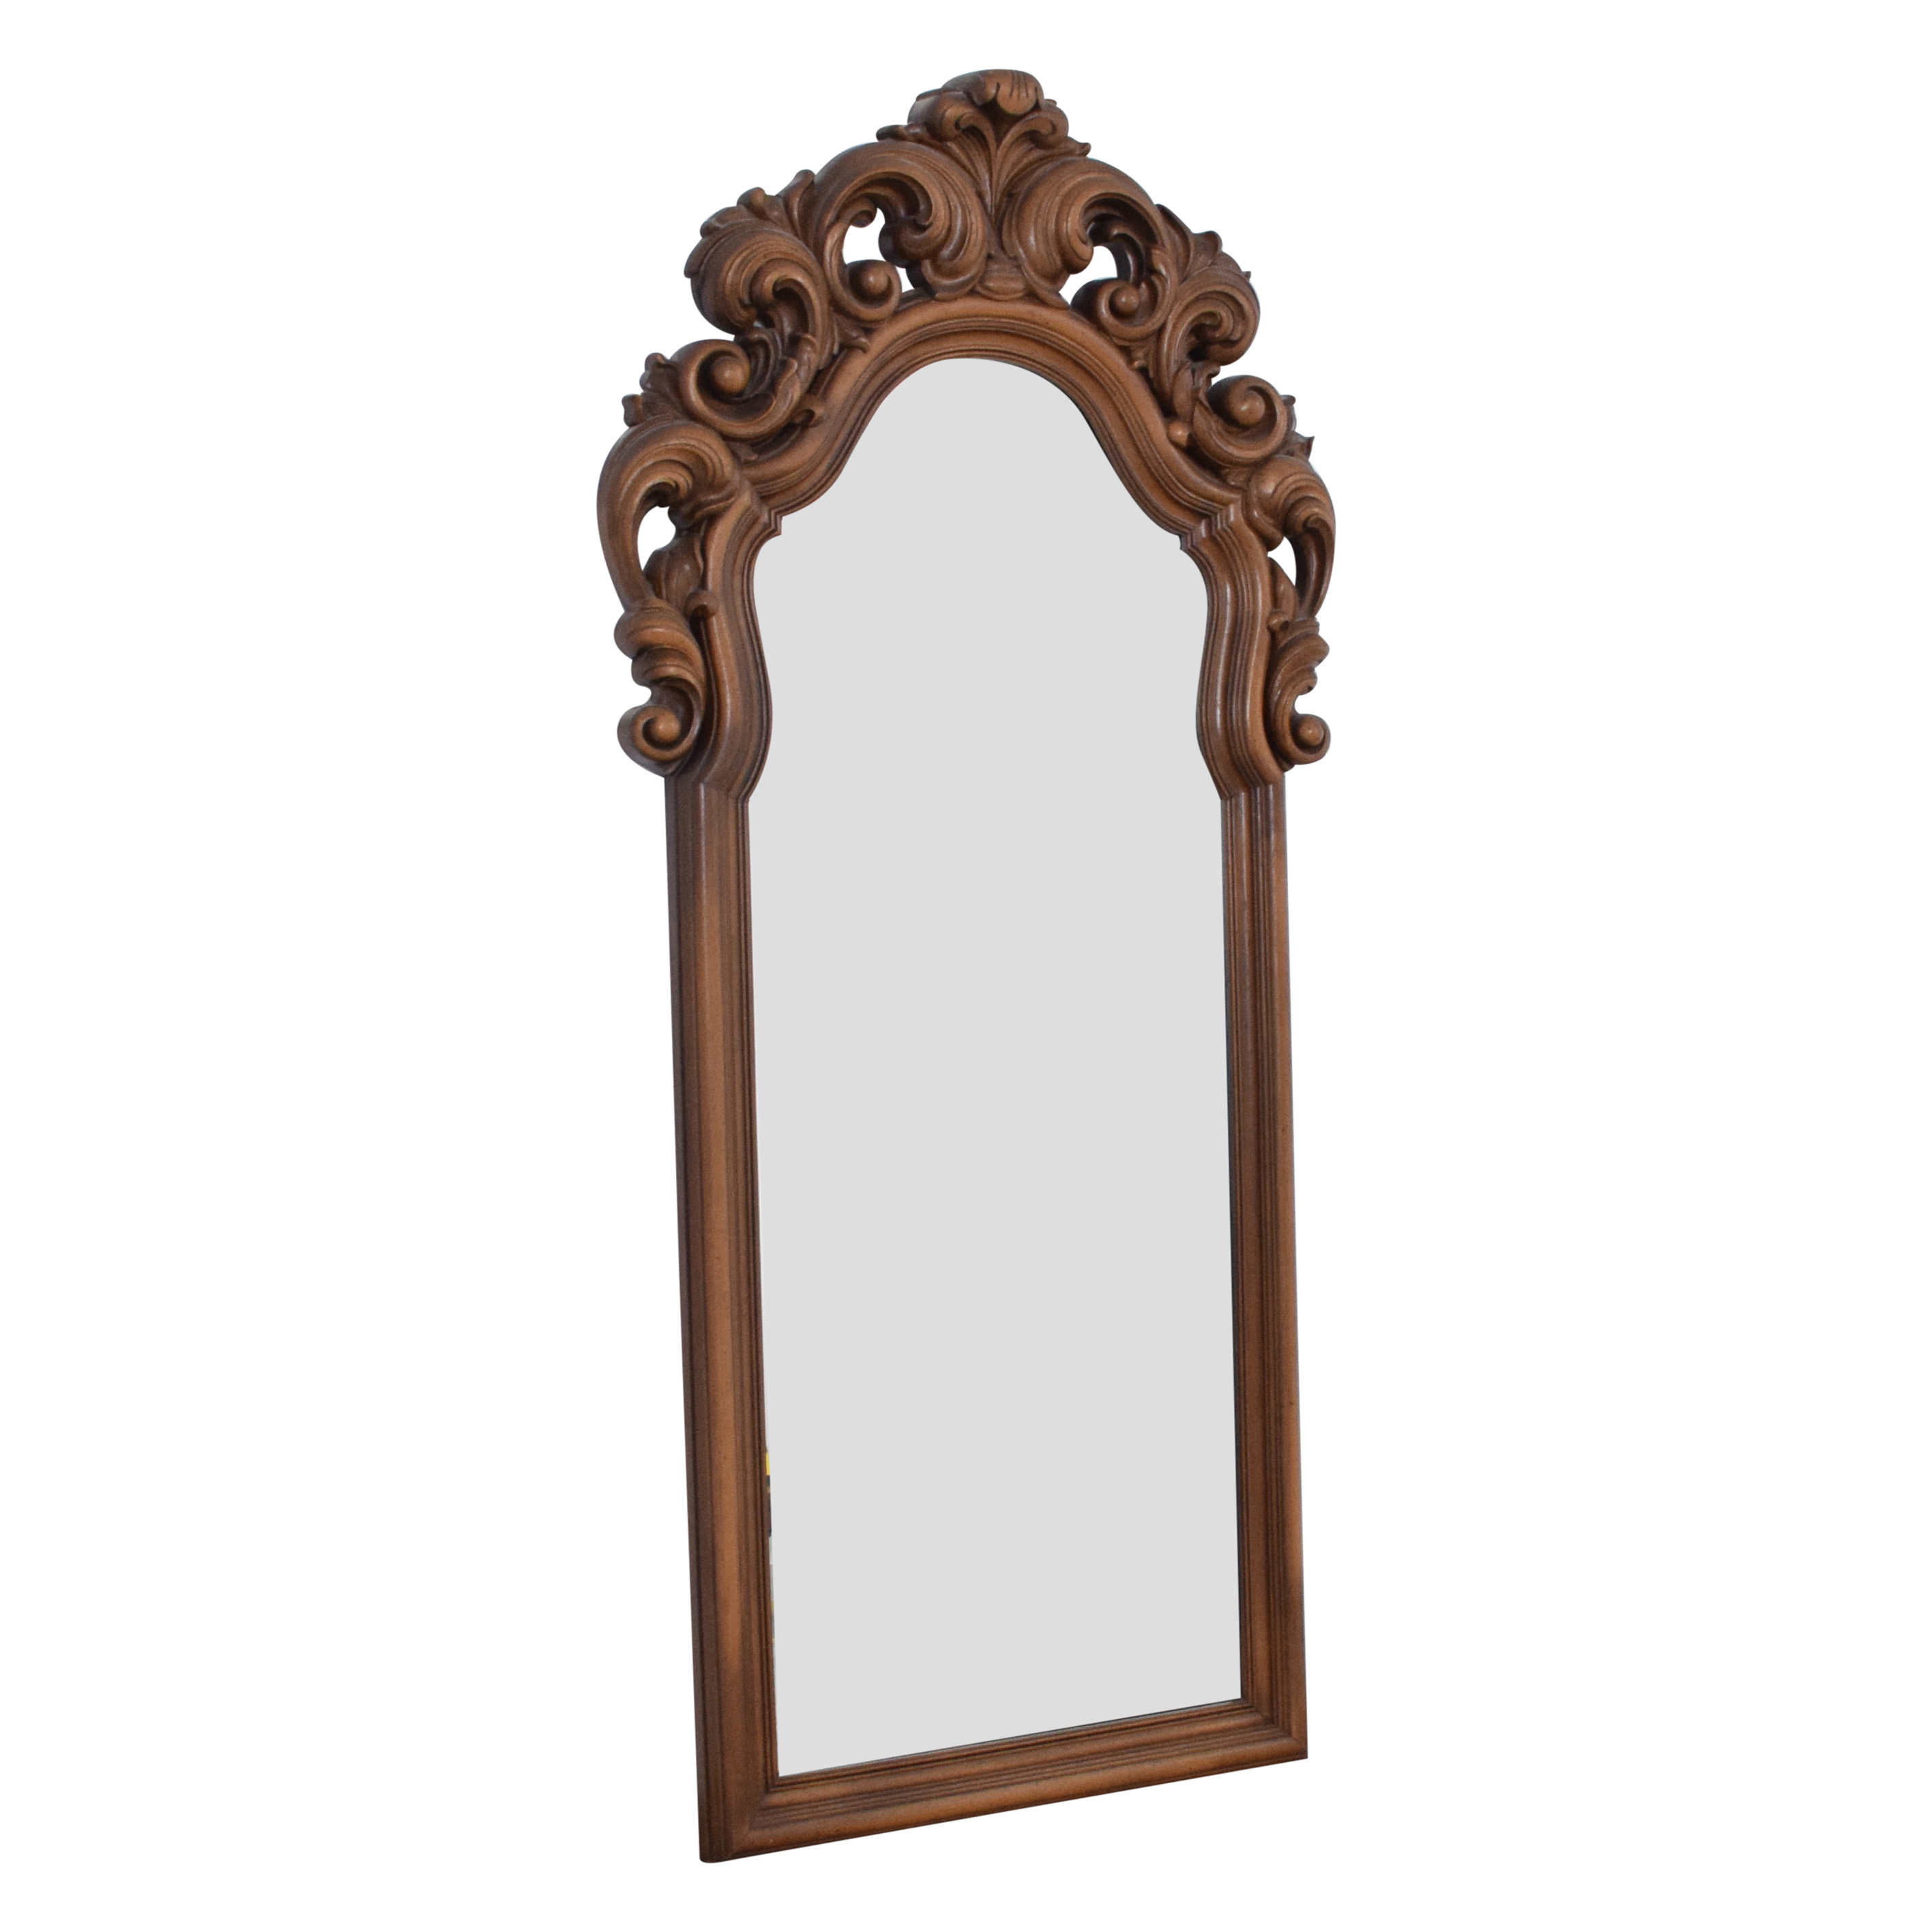 Broyhill Venetian Style Accent Mirror sale